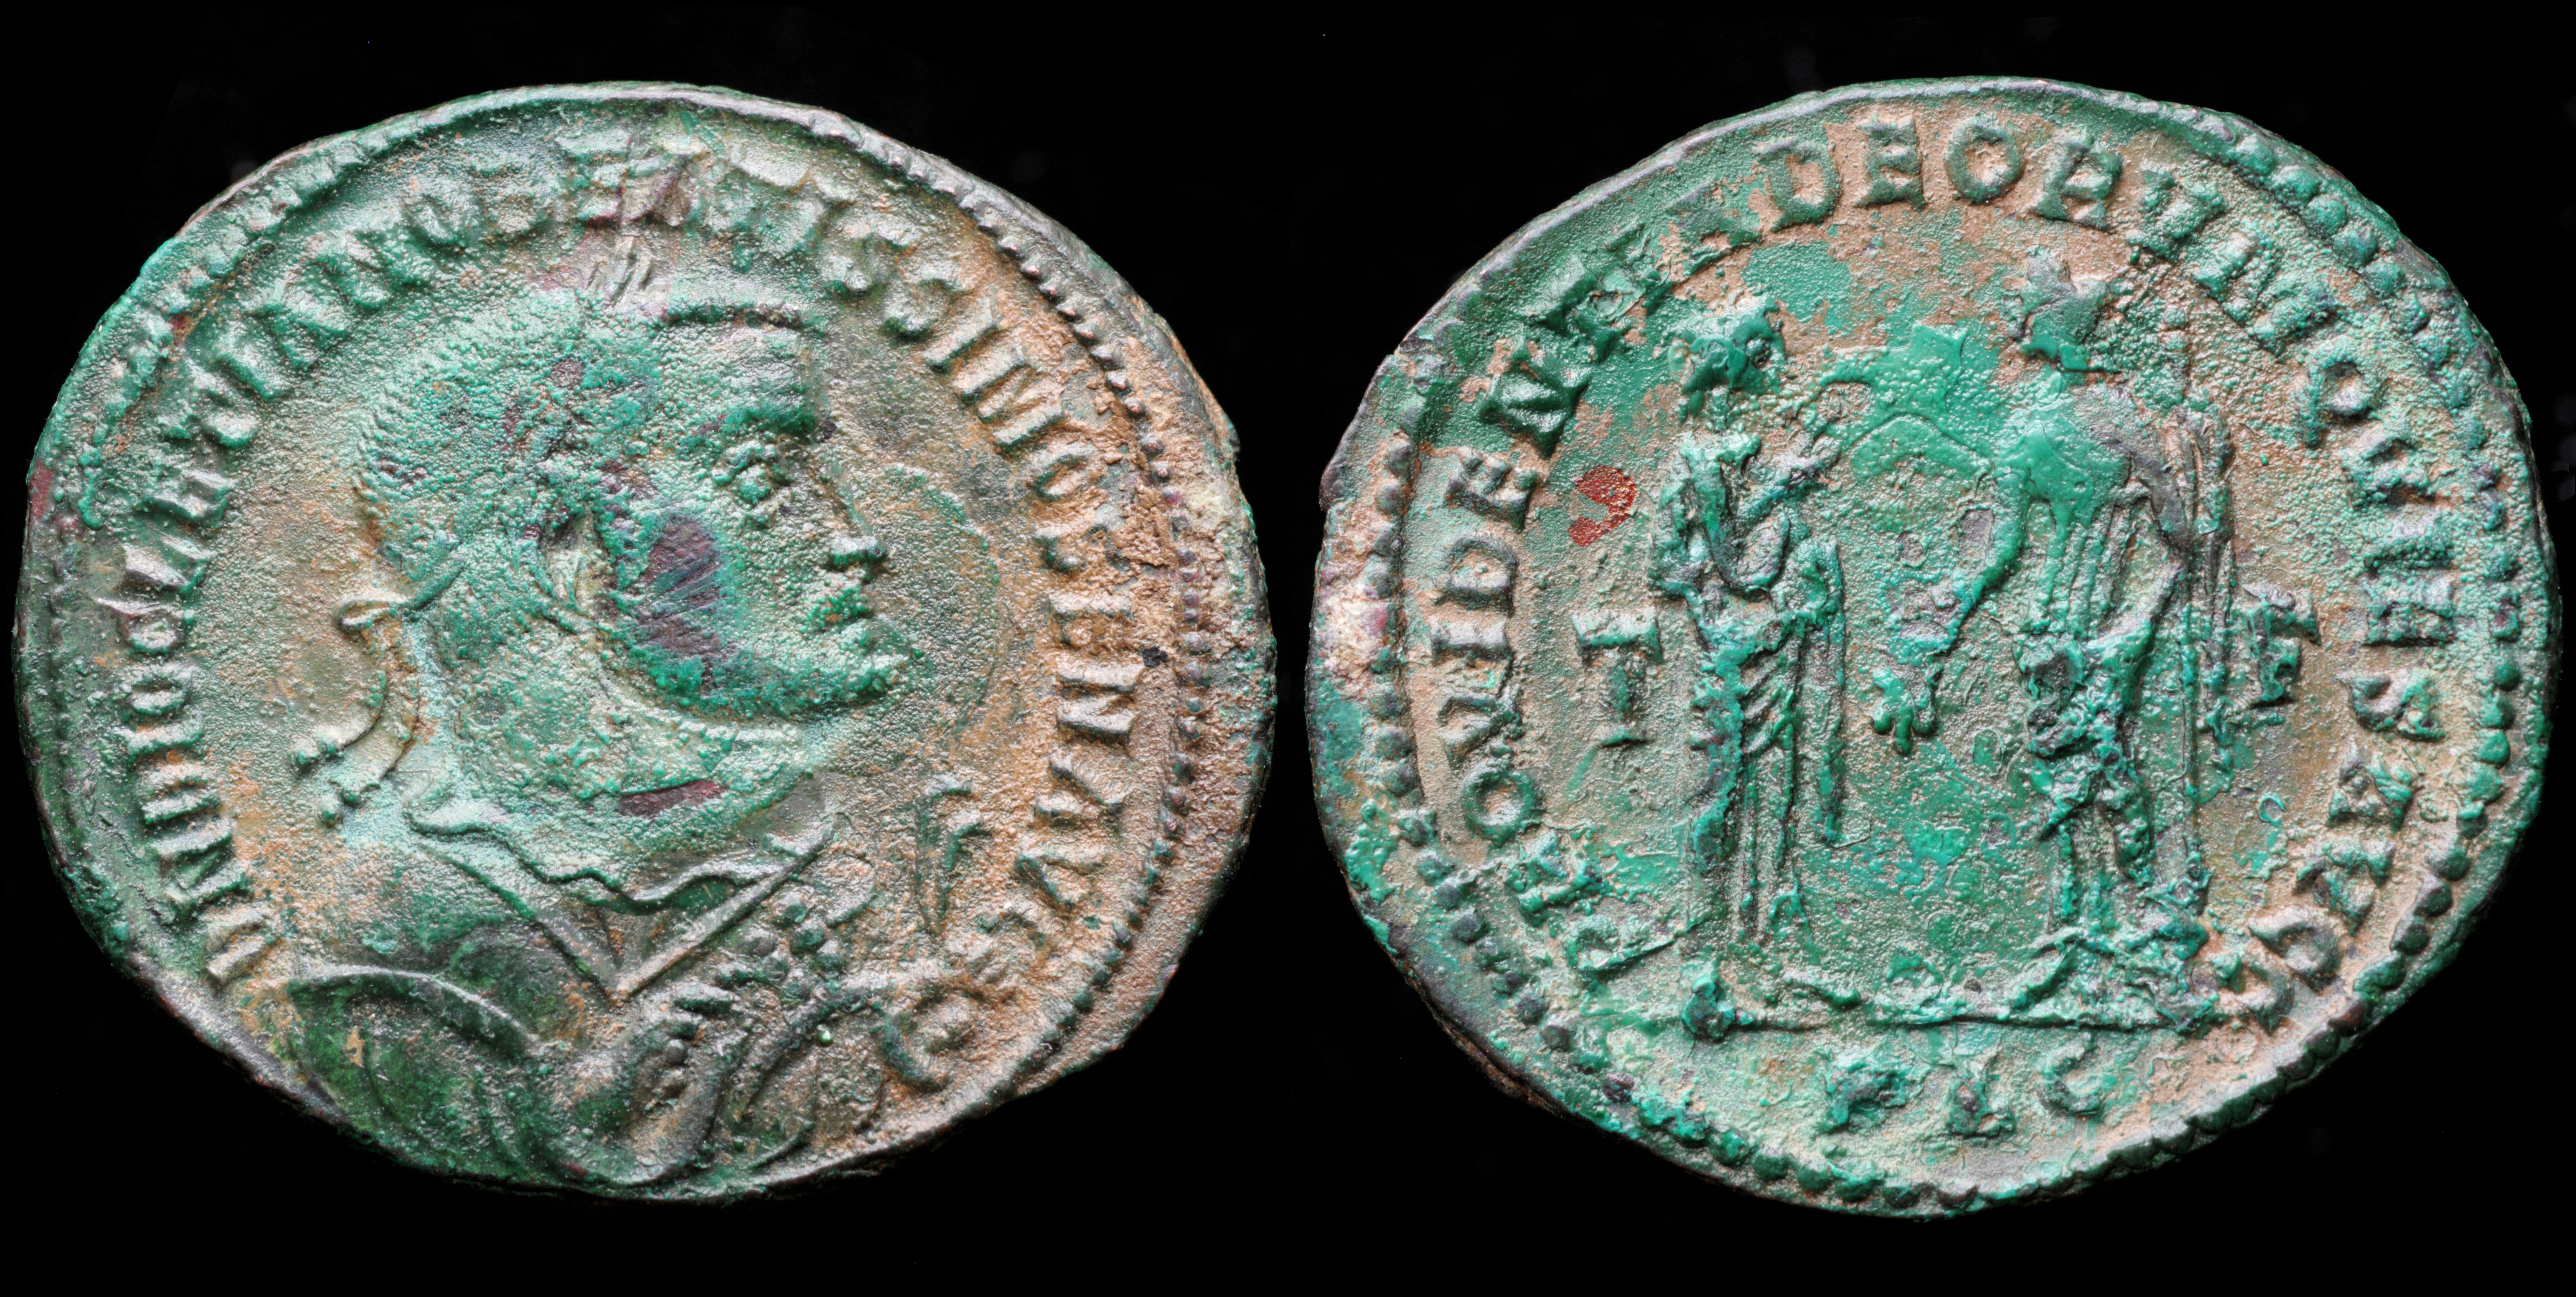 /Files/Images/Coinsite/CoinDB/Diocletian_Providentia_Deorum_PLG.jpg